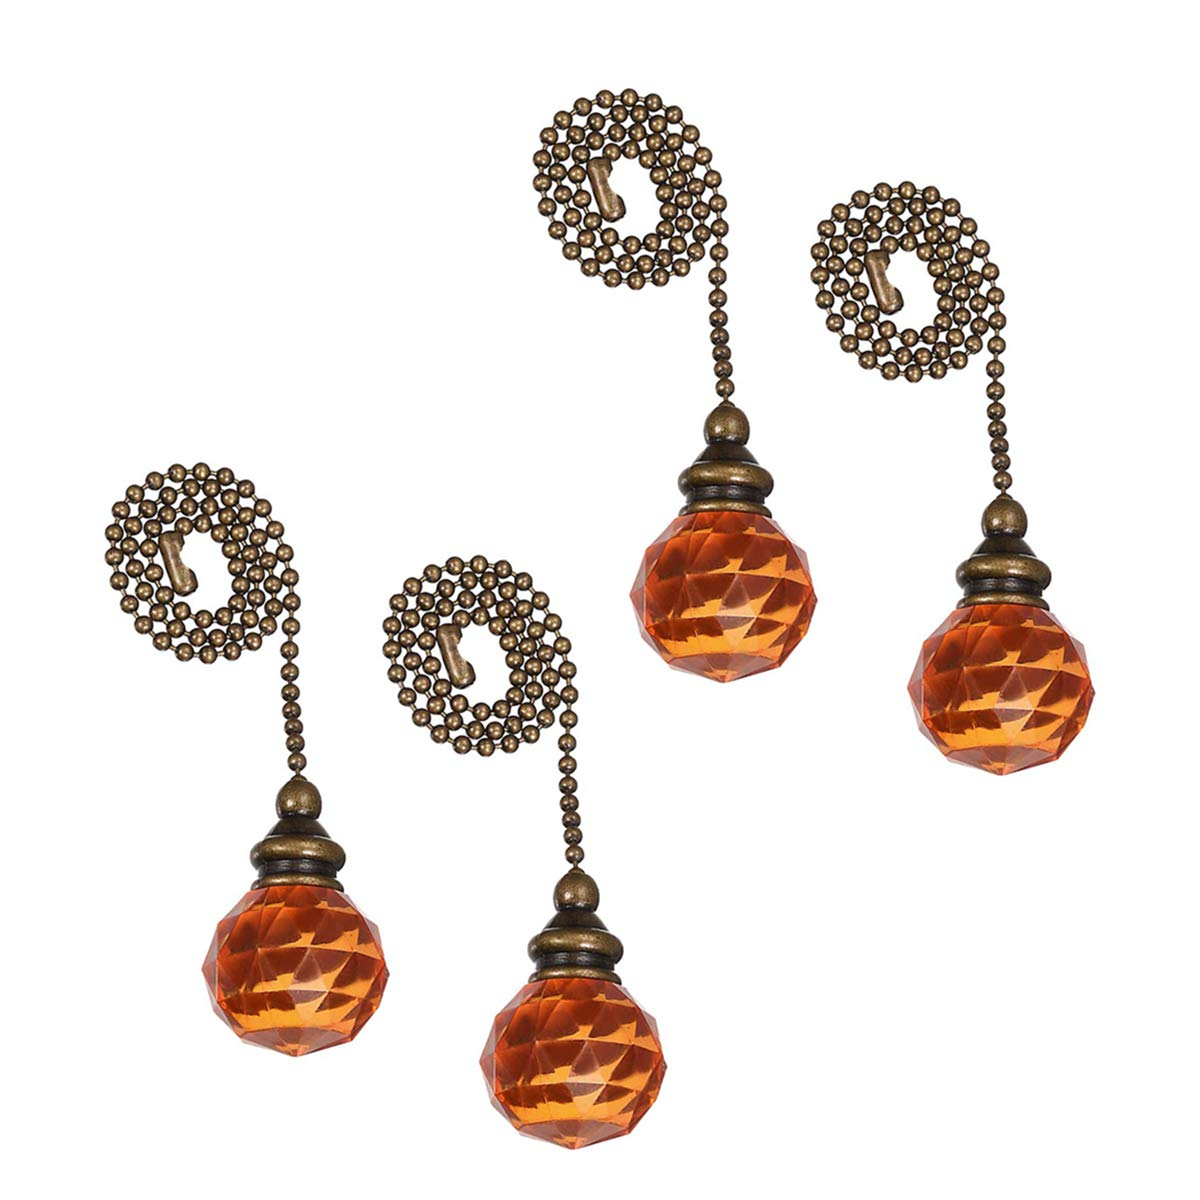 PENCK Fan Pull Chain Decorative Ceiling Light Pull Chains Ornament Set 12 inchesBronze Chains Acrylic Pendant for Ceiling Lights, Fans, Durable and No Rust, Pack of 4